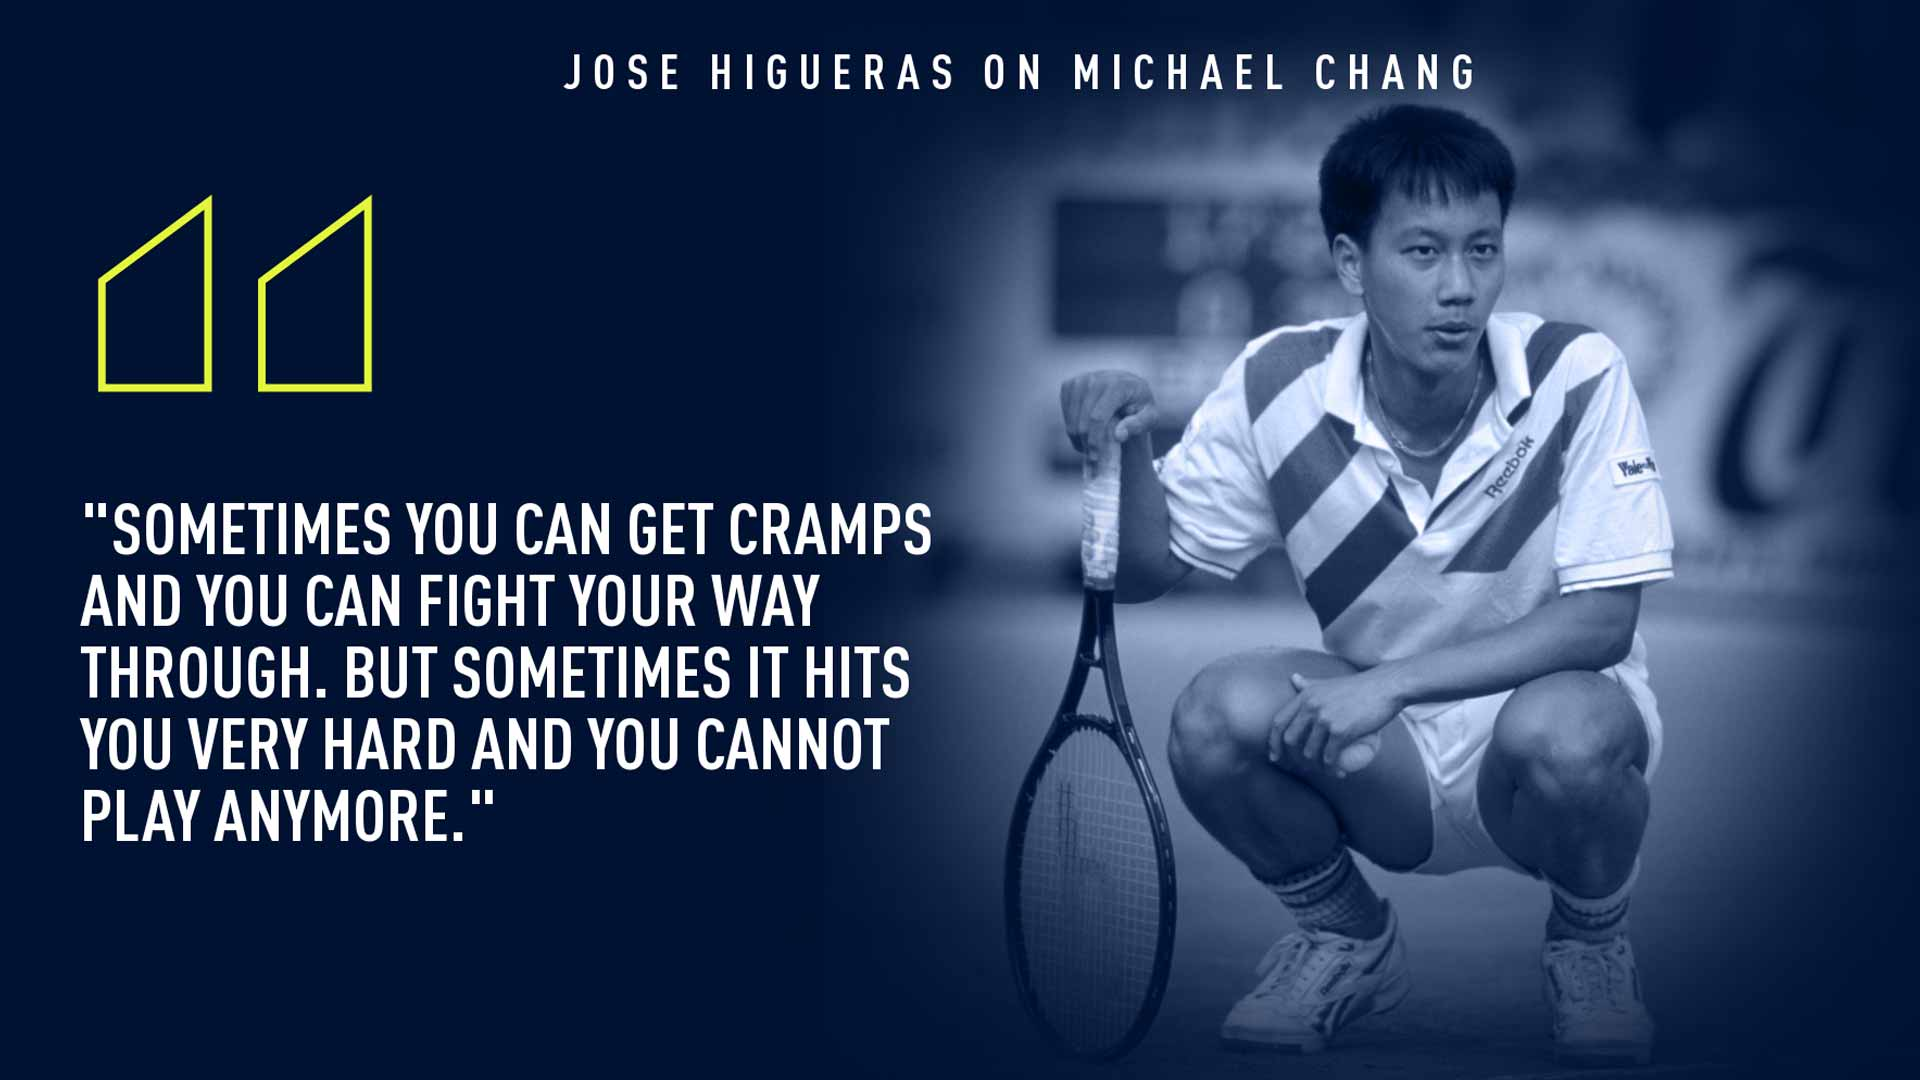 Jose Higueras on Michael Chang